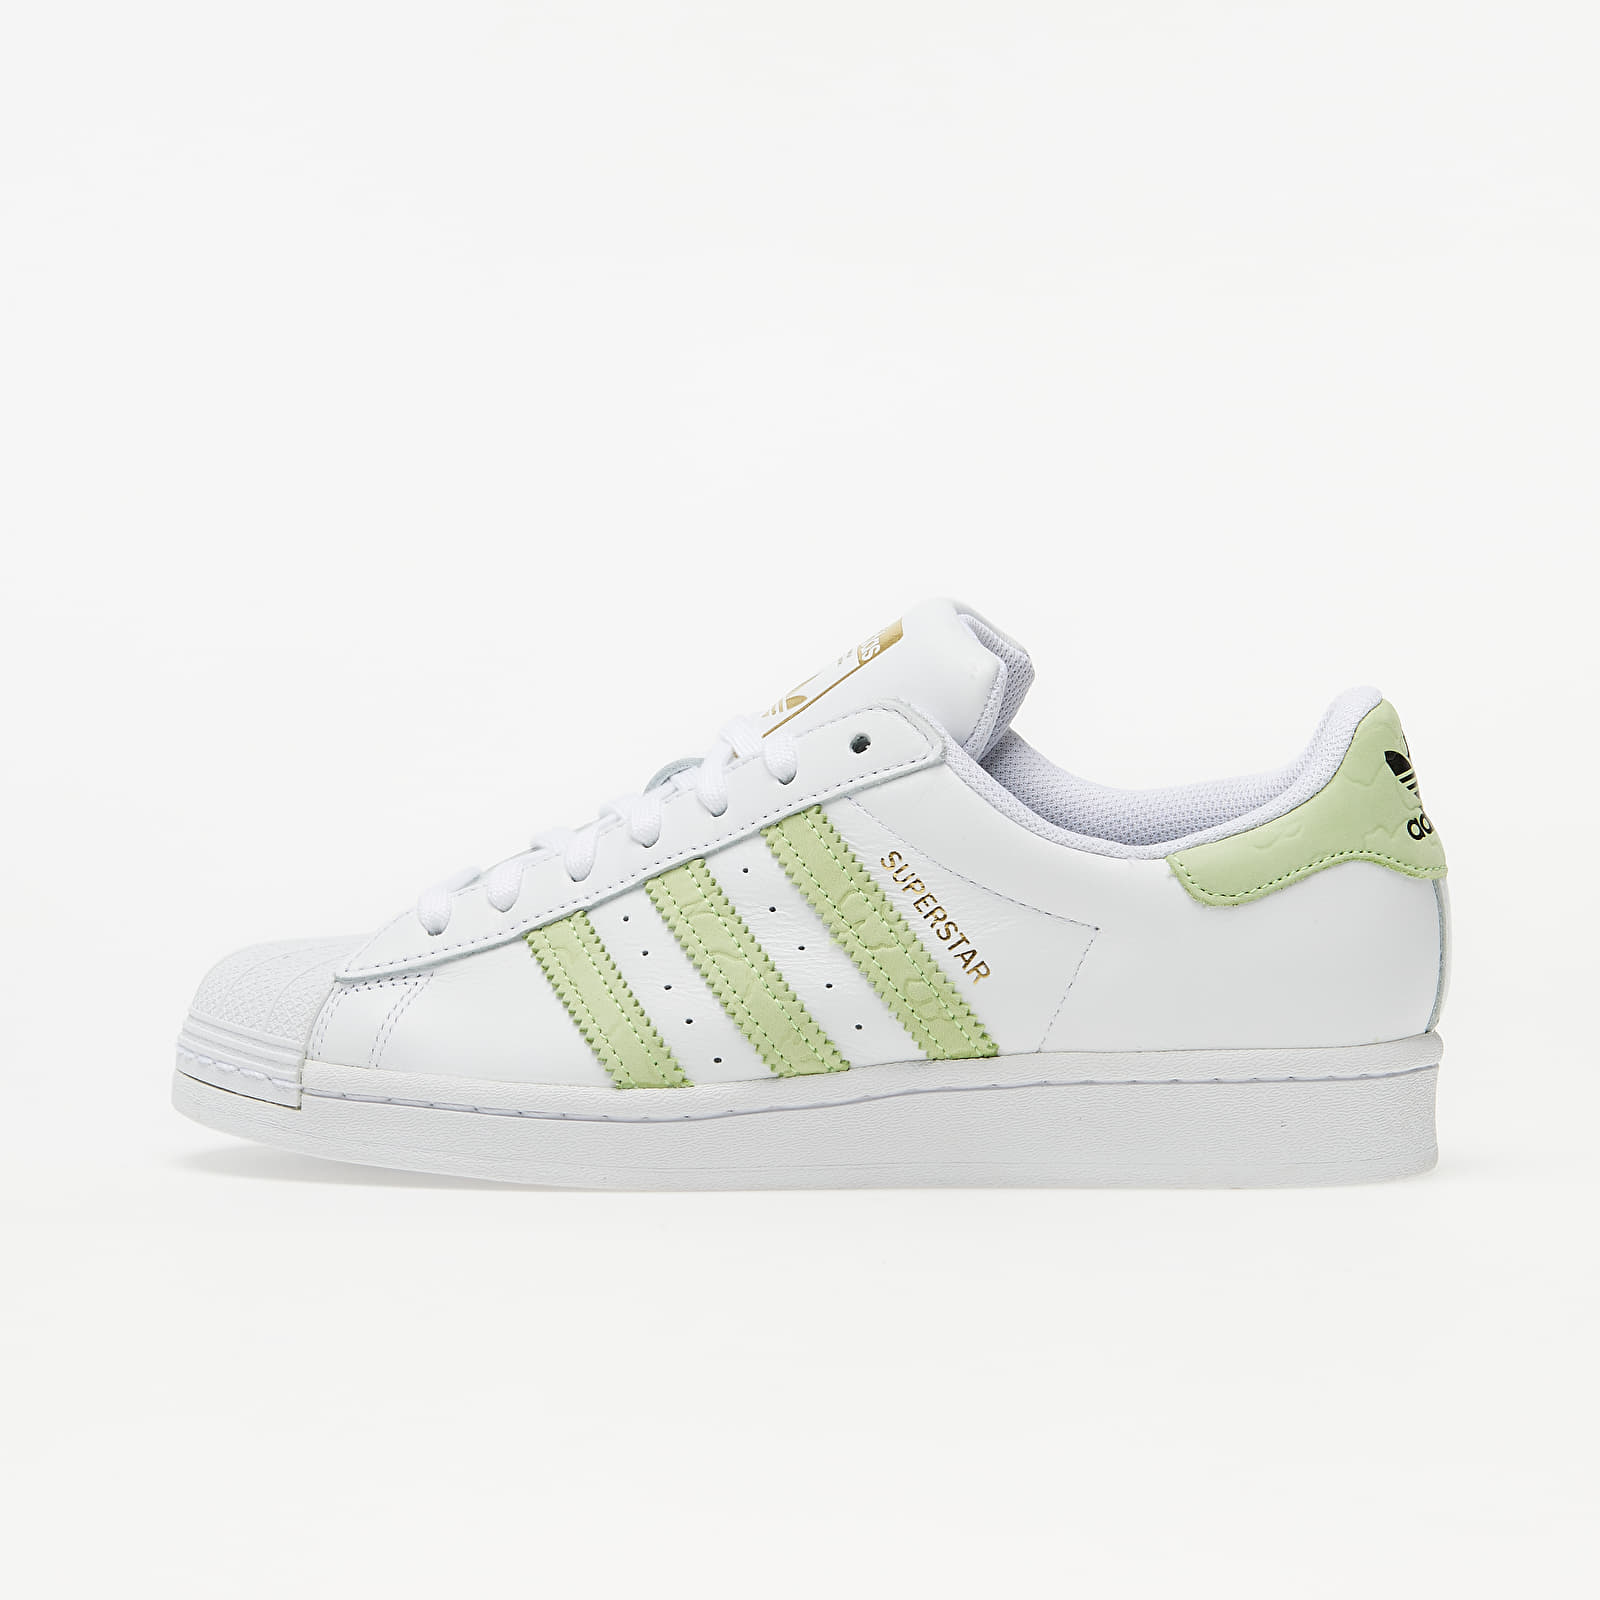 Dámske topánky a tenisky adidas Superstar W Ftw White/ Hi-Res Yellow/ Gold Metalic